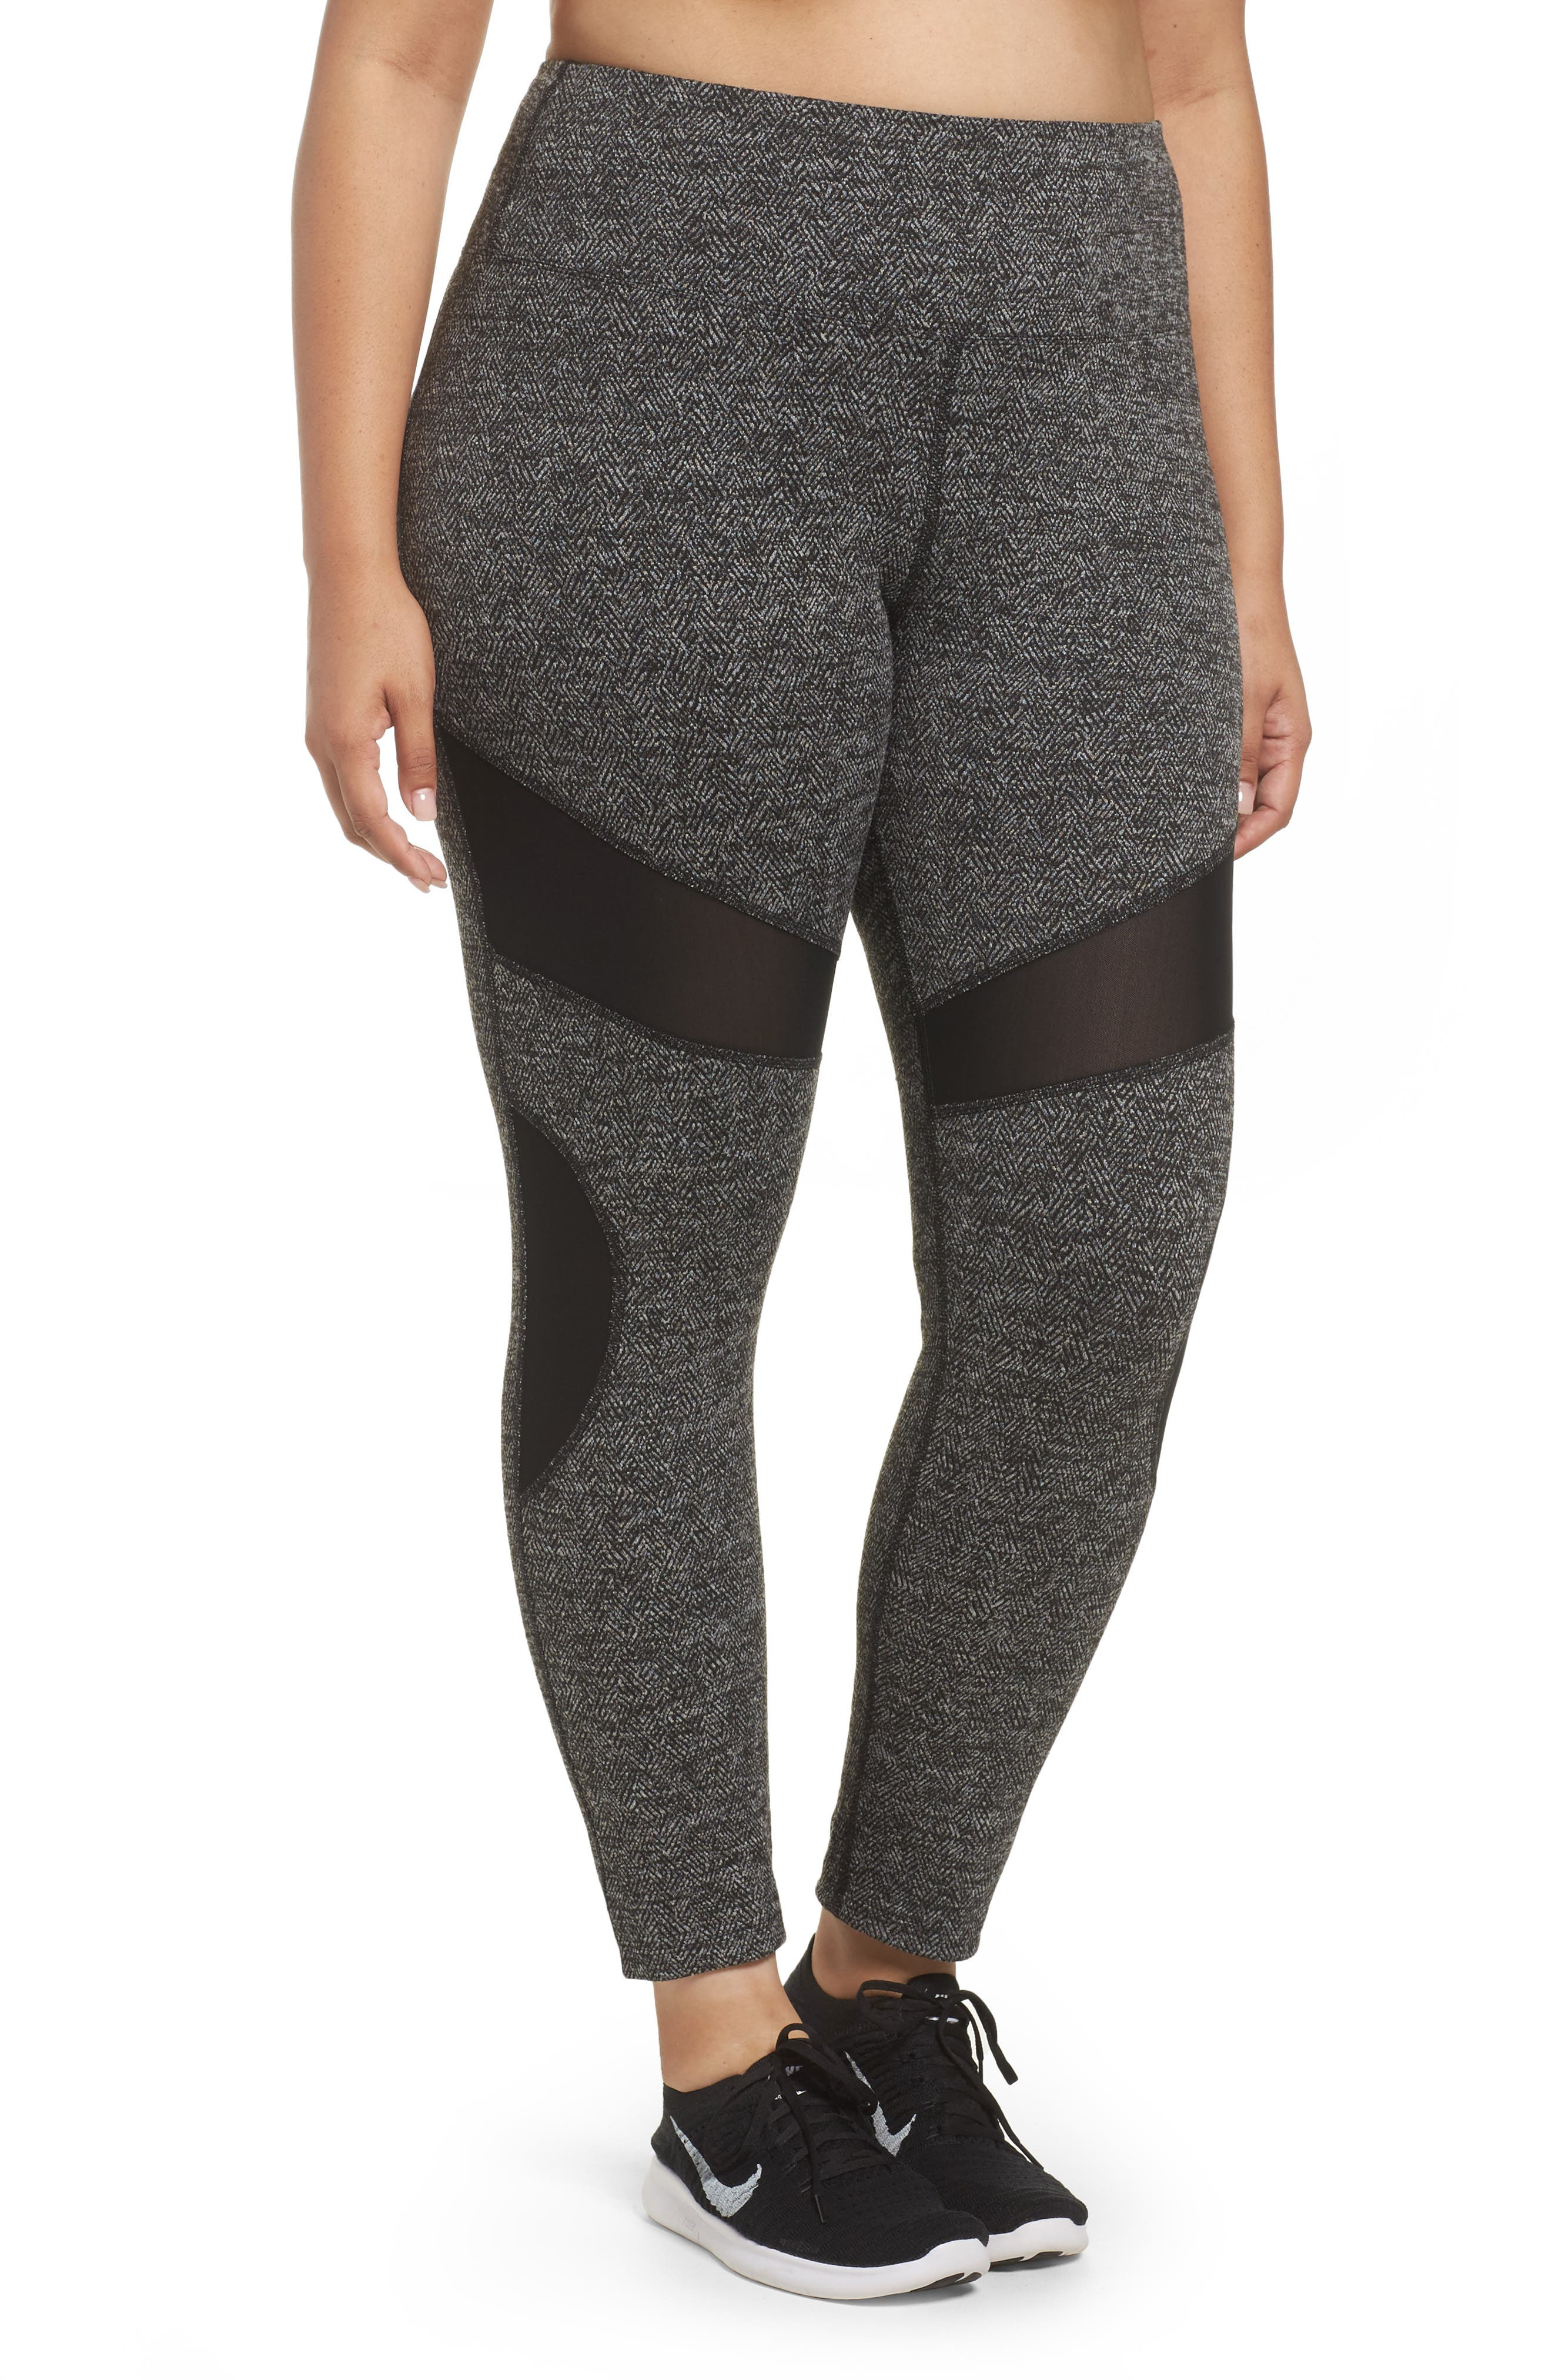 Optic High Waist Leggings,                             Main thumbnail 1, color,                             Black